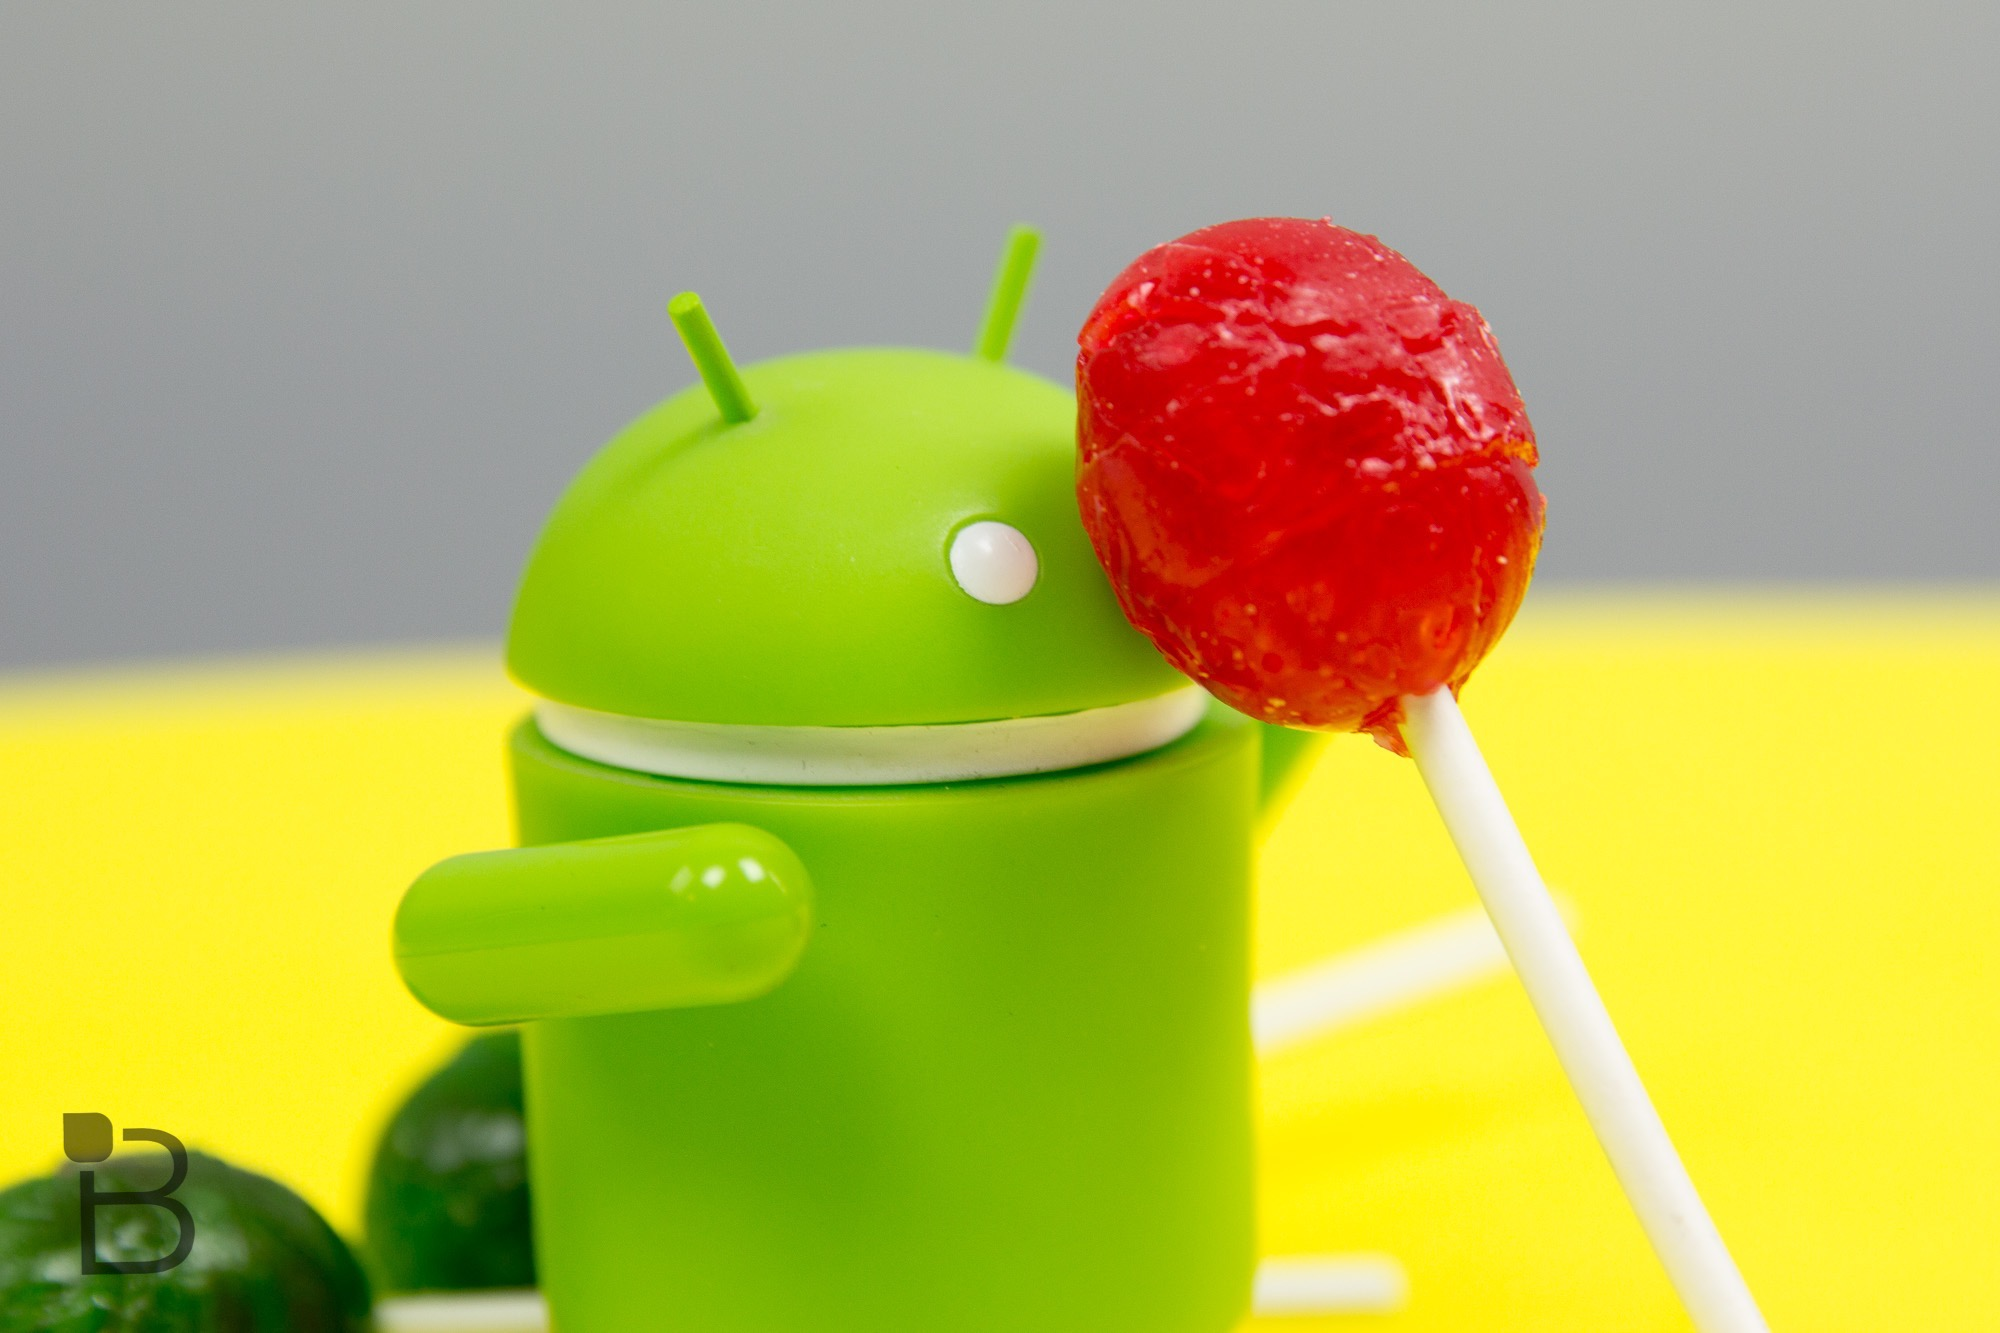 Google-Android-5.0-Lollipop-5